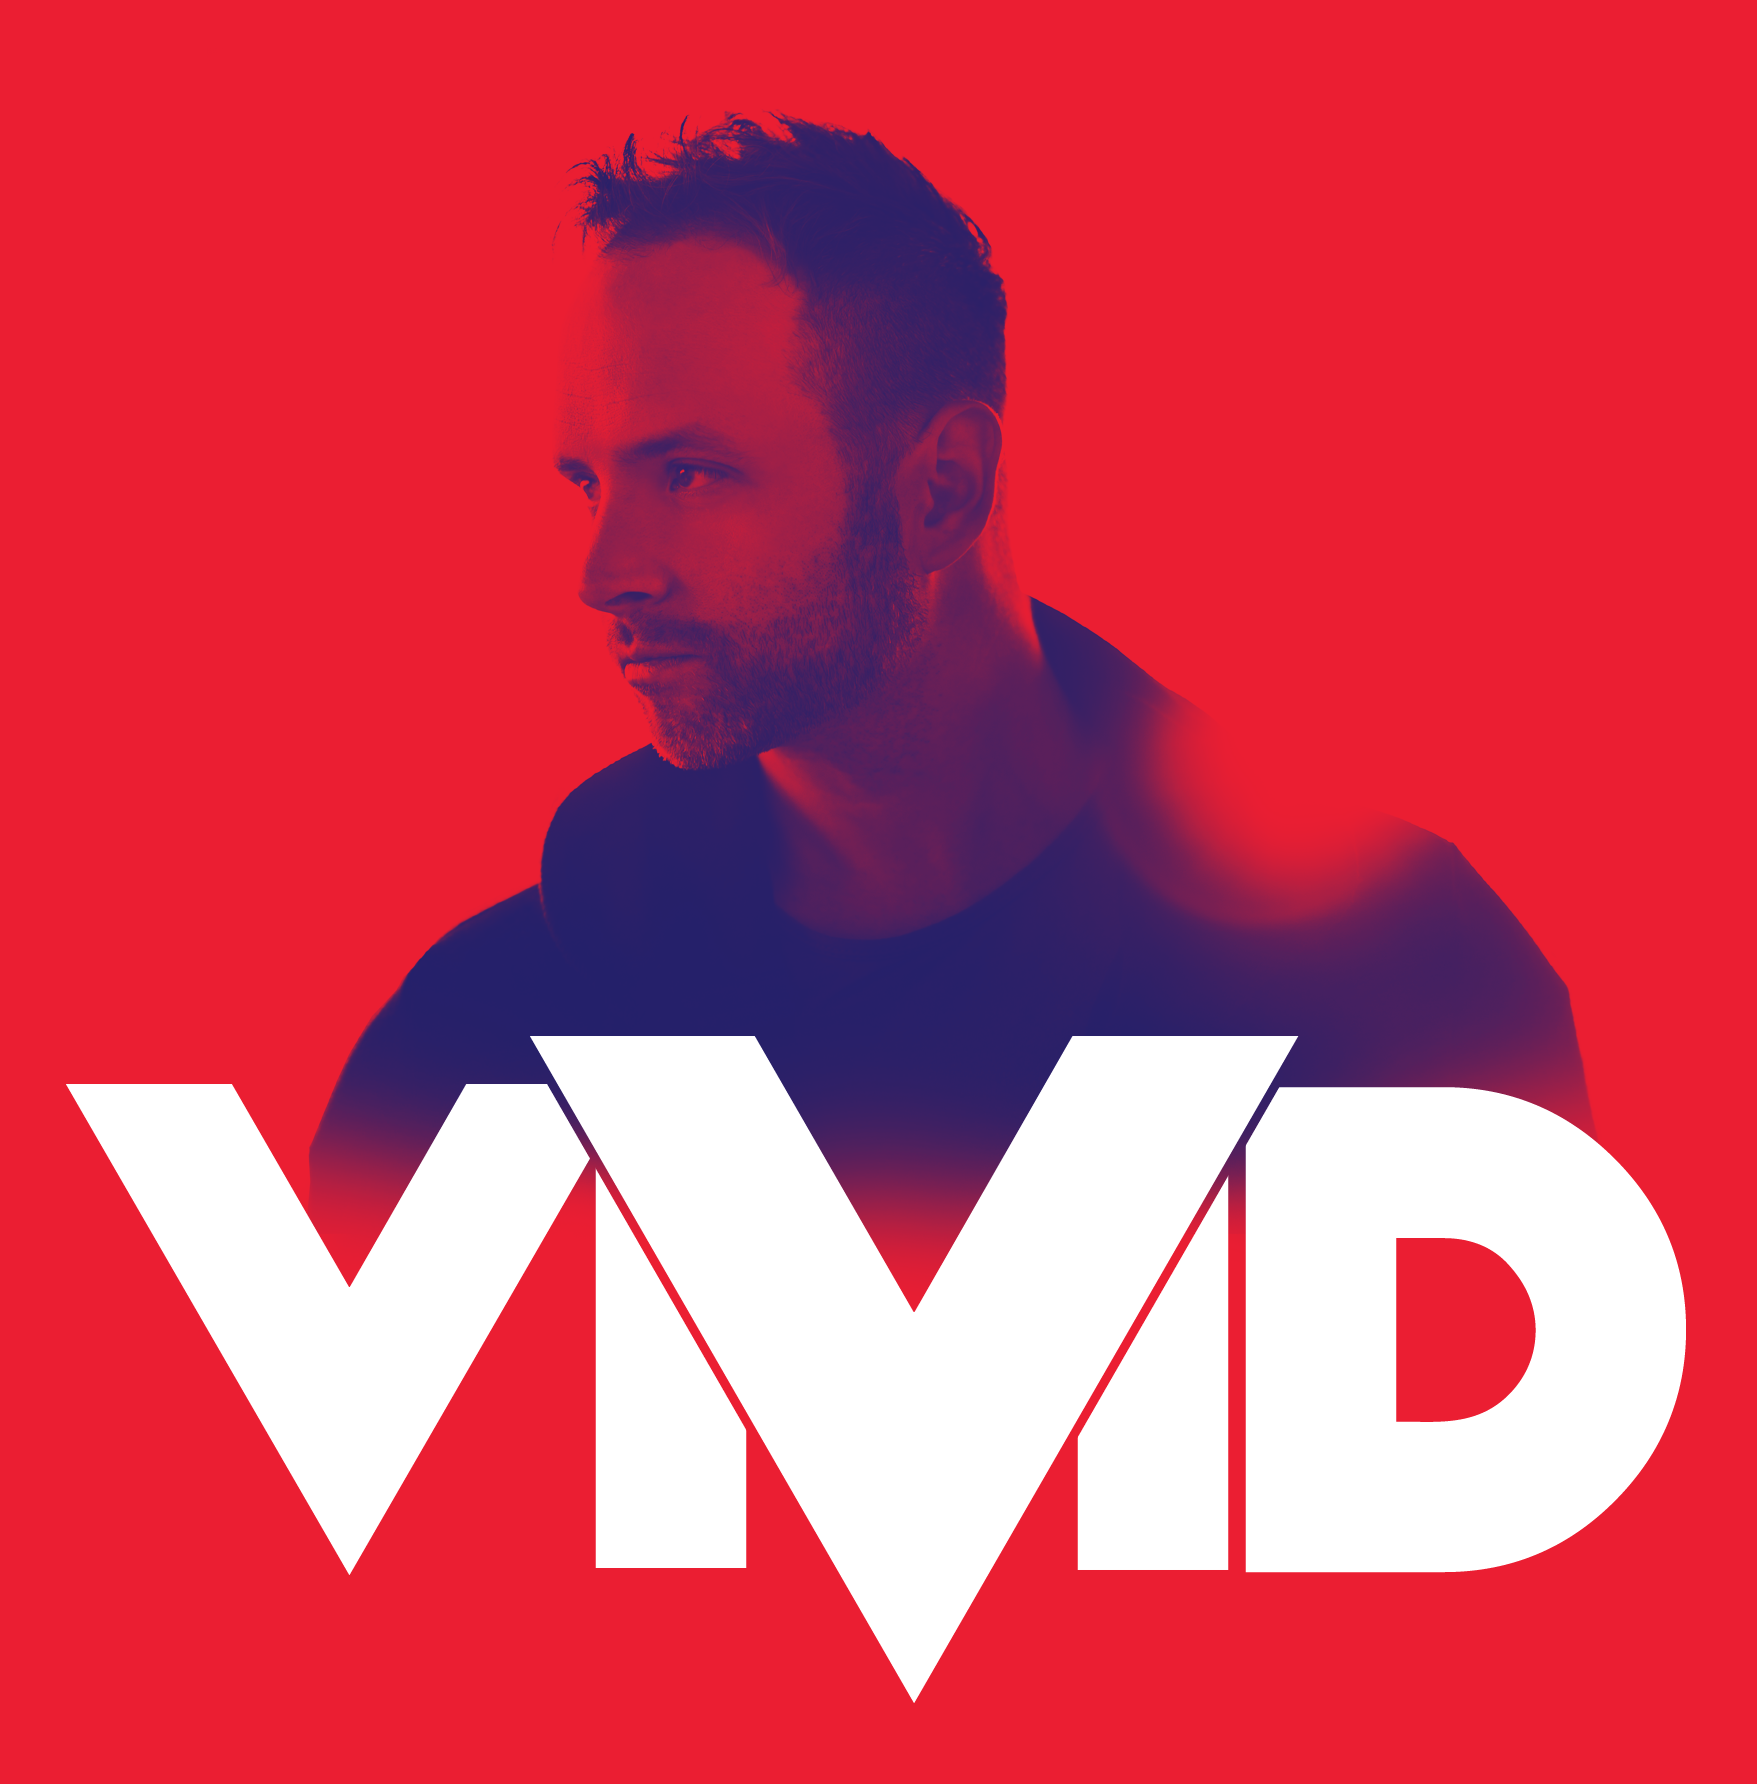 VIVID | Future Music Producer and DJ